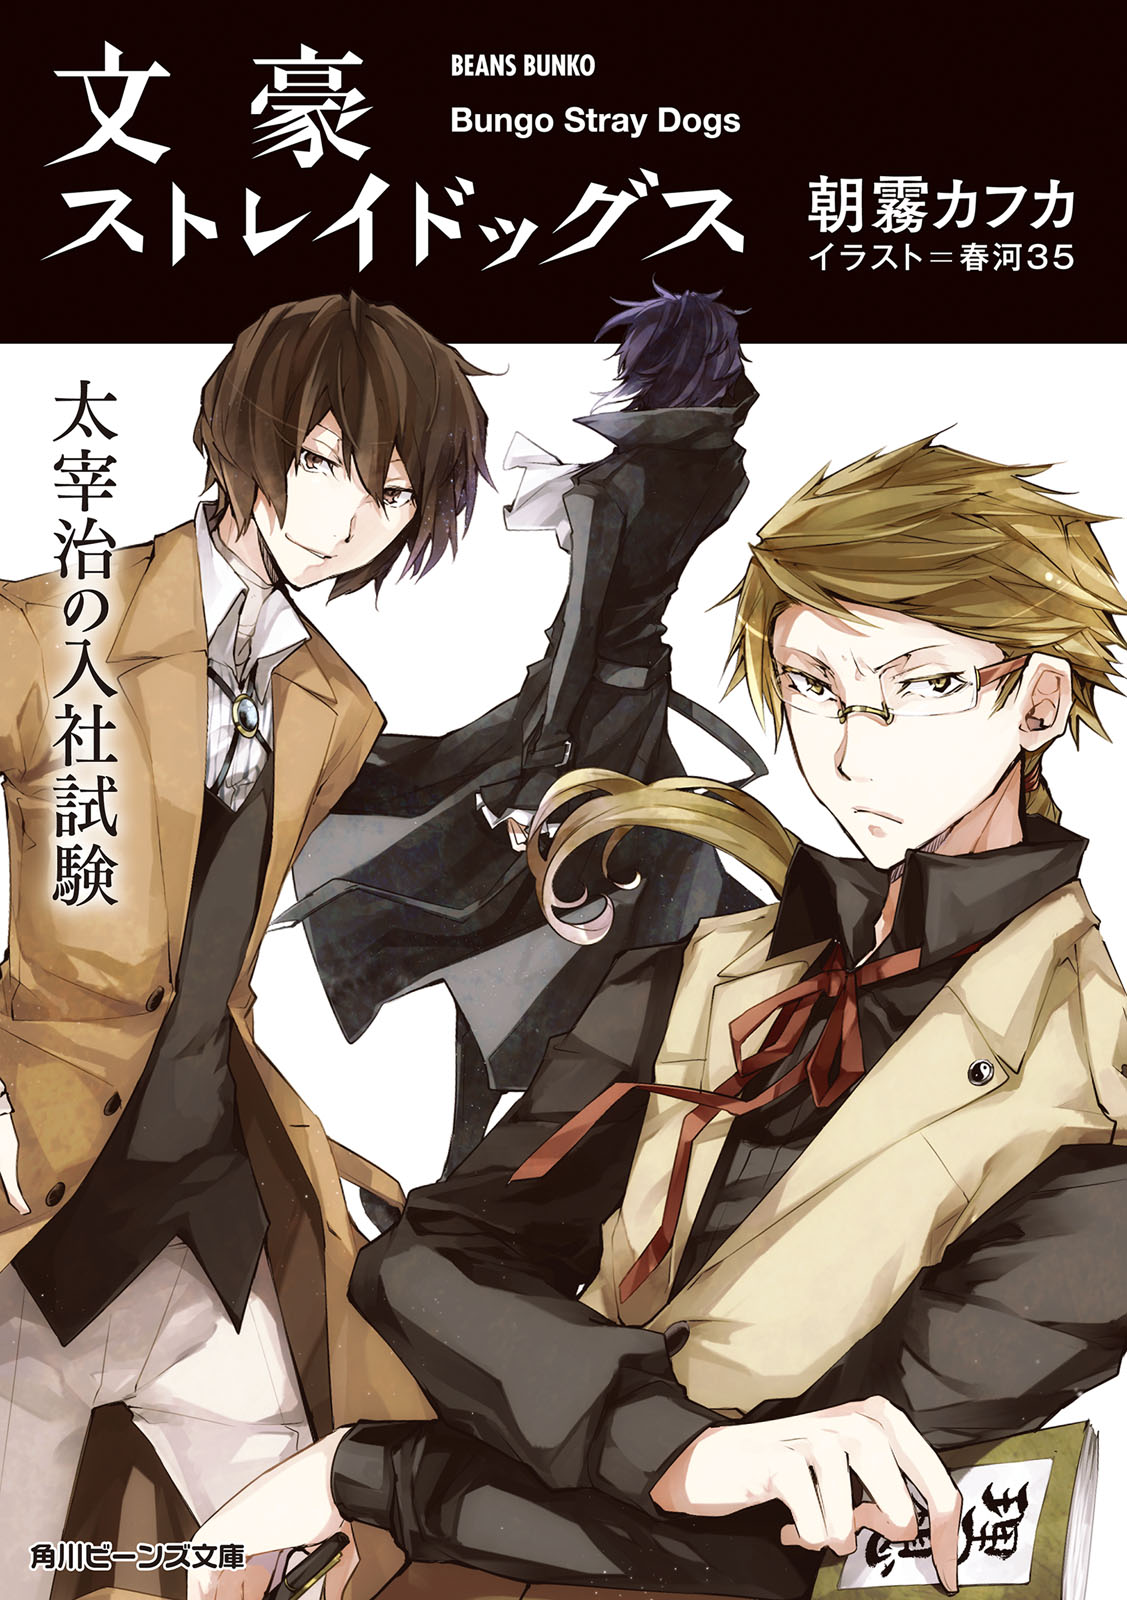 Bungo Stray Dogs